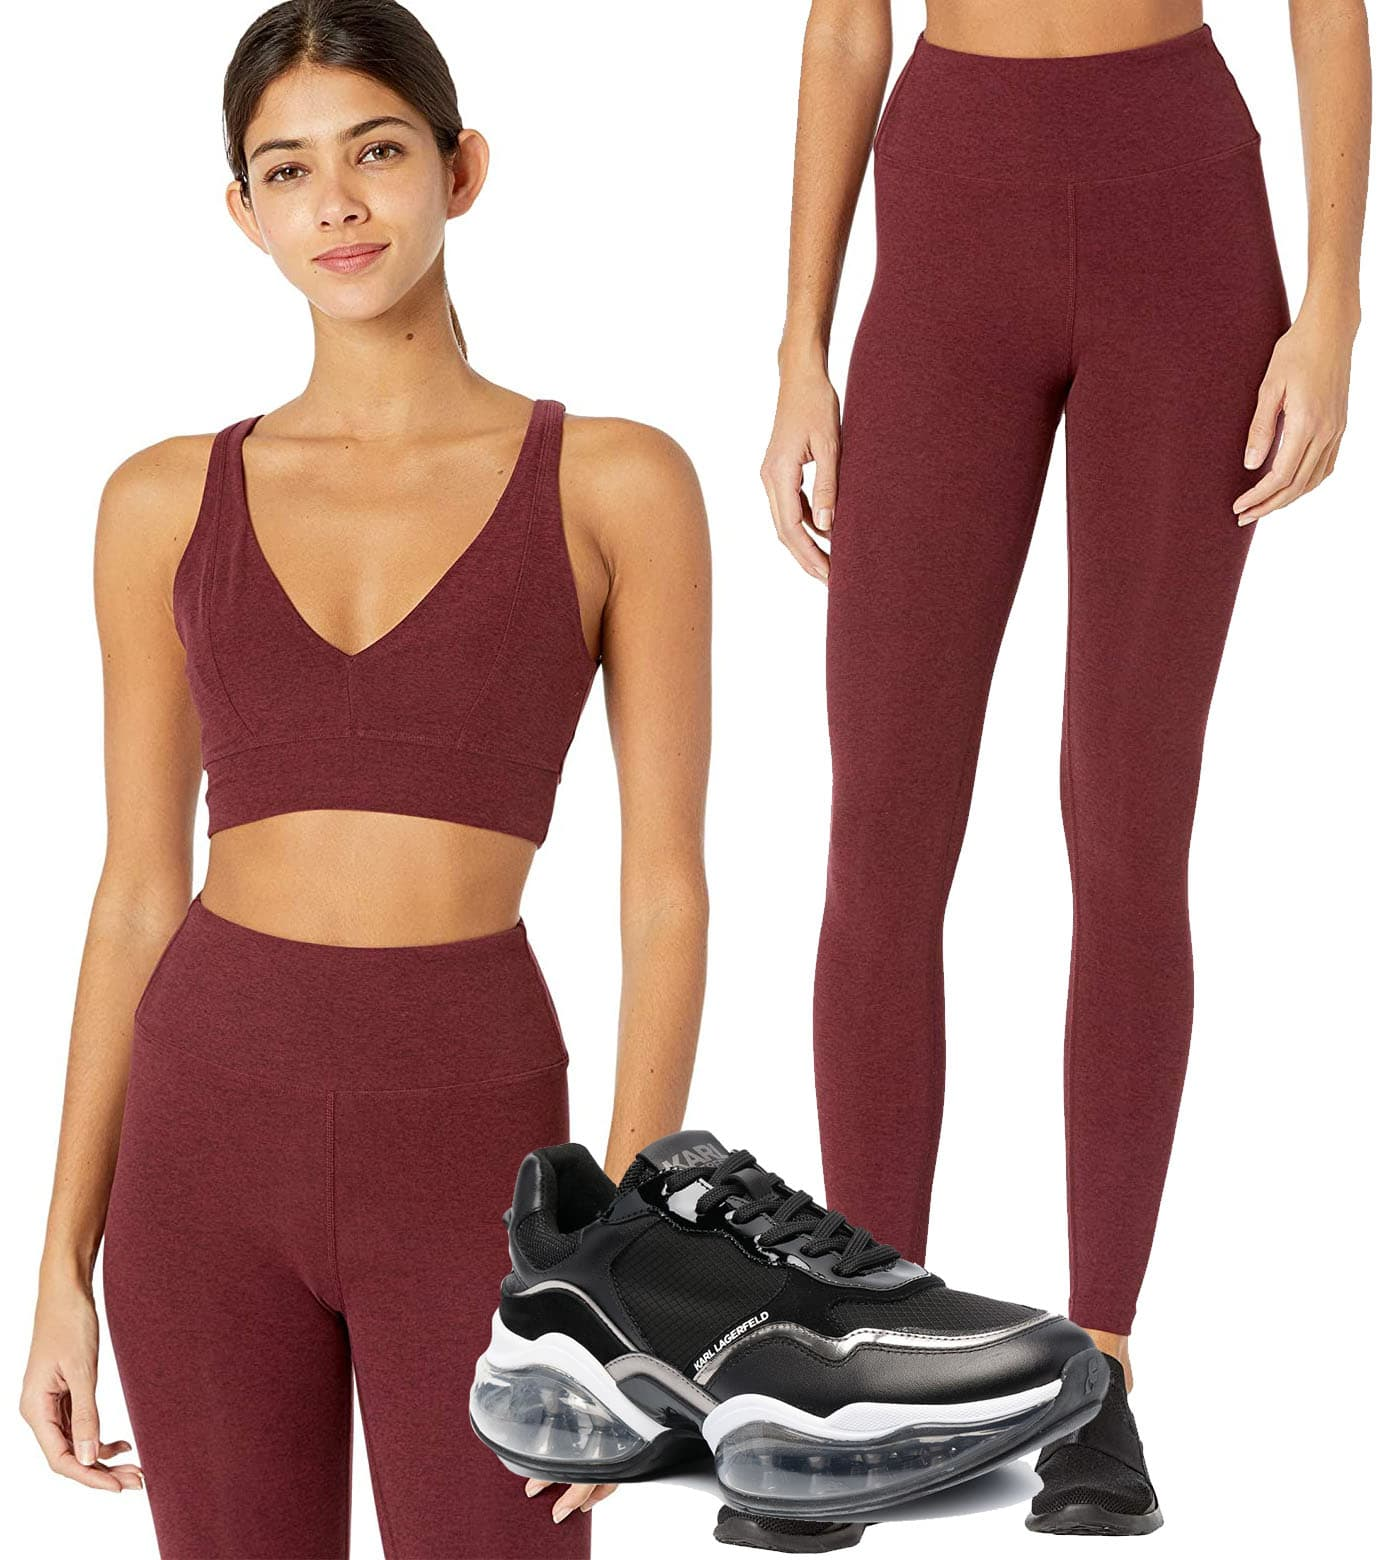 Year of Ours Heather V-Bra, Year of Ours Yoga Leggings, Karl Lagerfeld Ventura 2 Chunky Sneakers